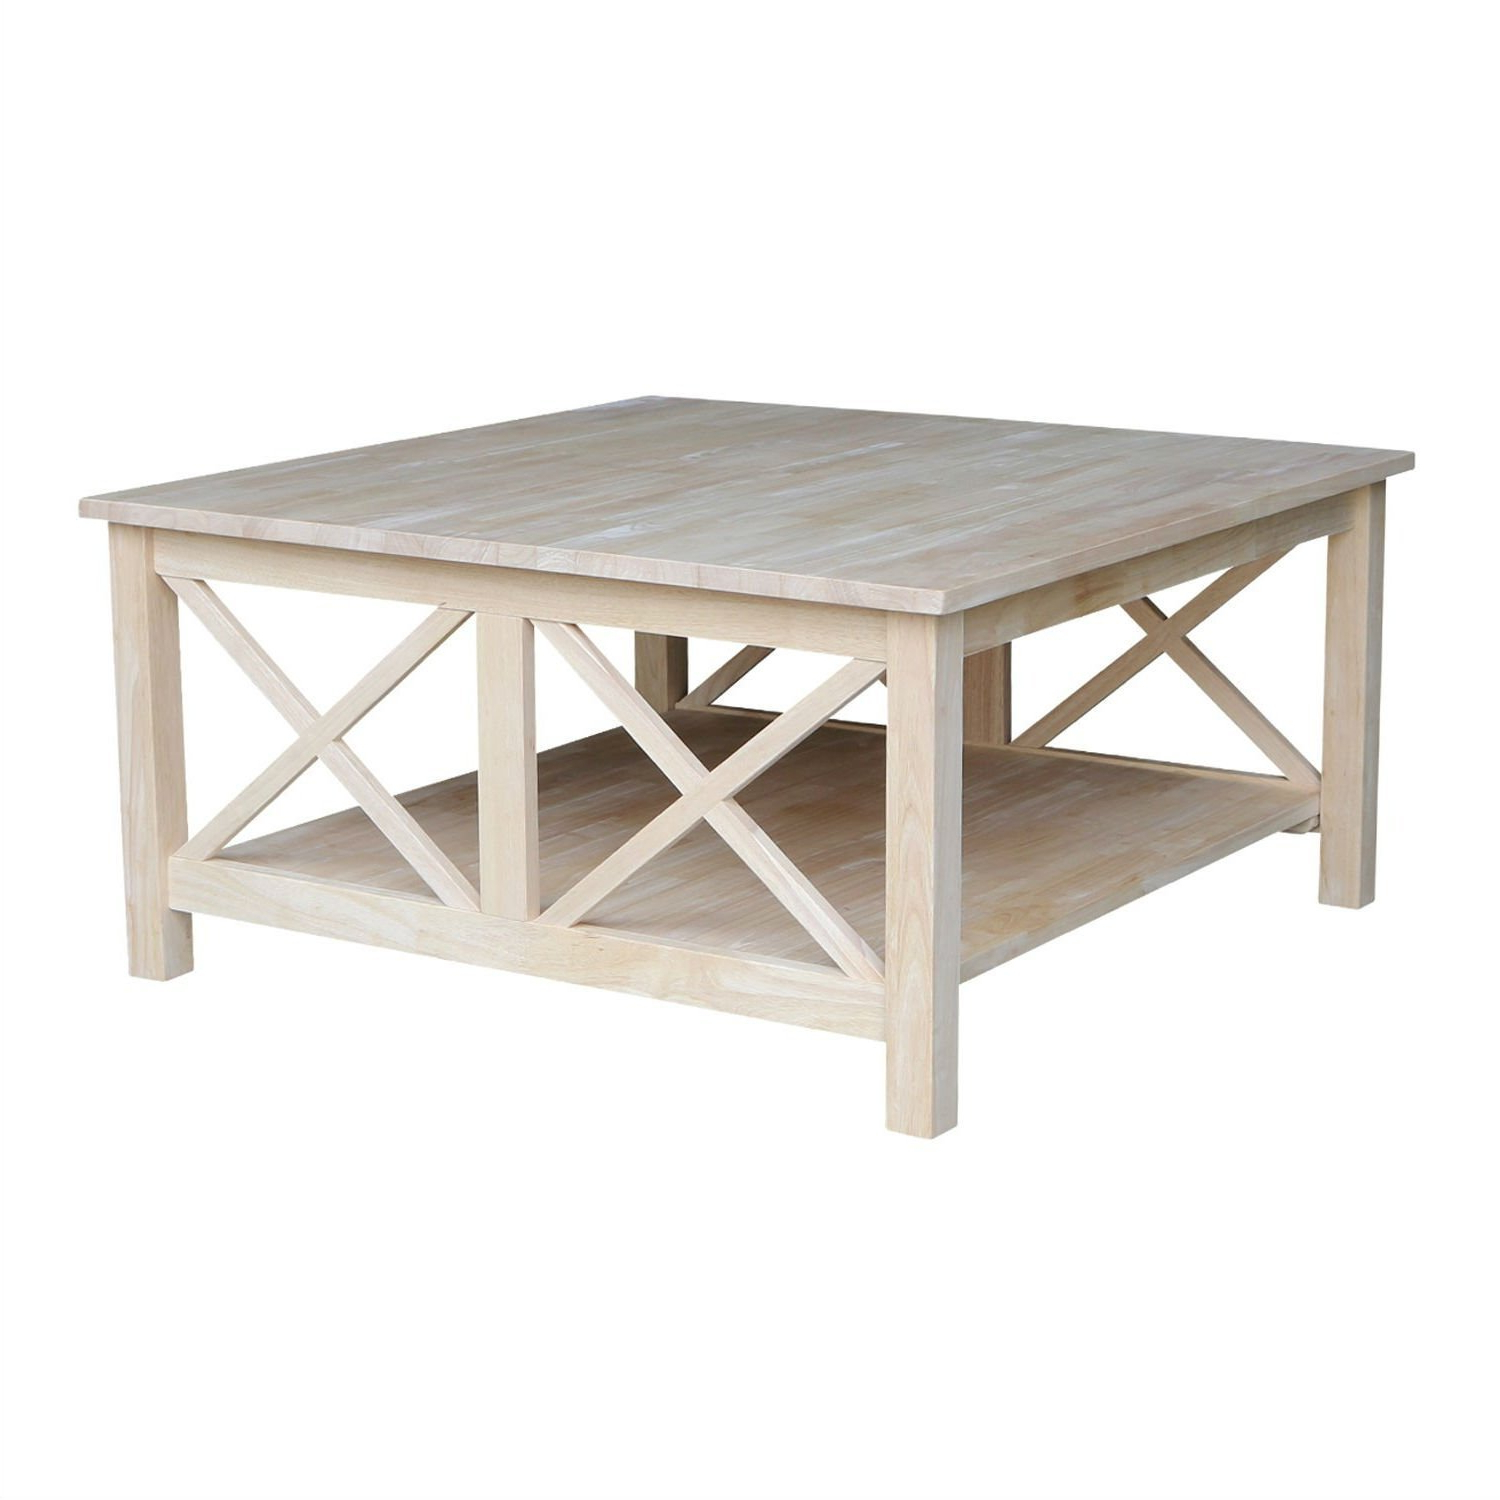 Widely Used 'hampton' Unfinished Solid Parawood Square Coffee Tables Pertaining To Square Unfinished Solid Wood Coffee Table With Bottom Shelf (View 14 of 20)